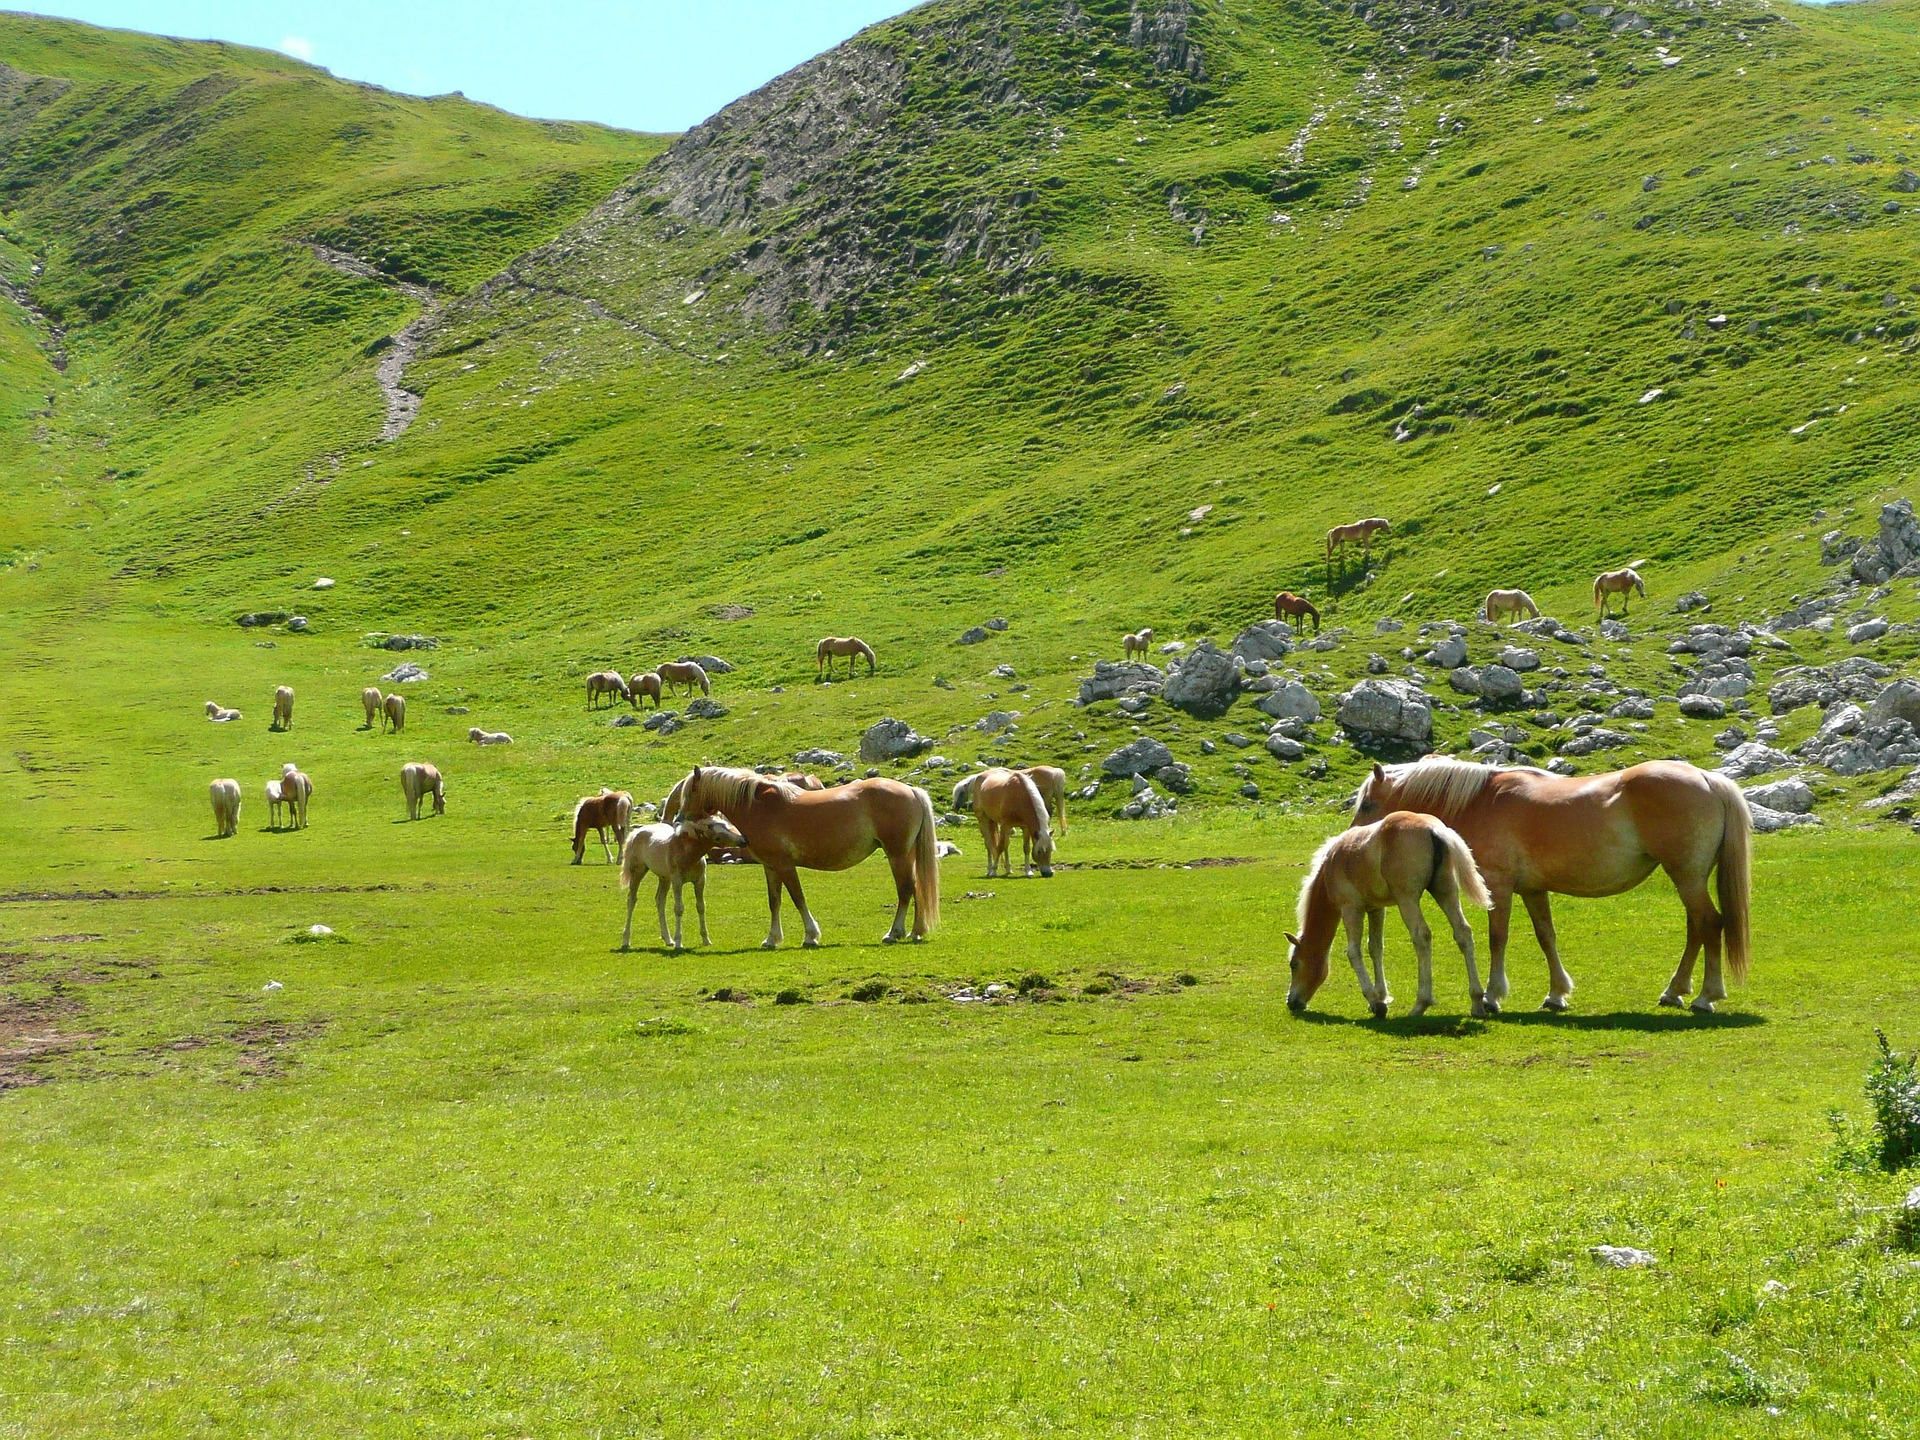 Image of horses in the mountains